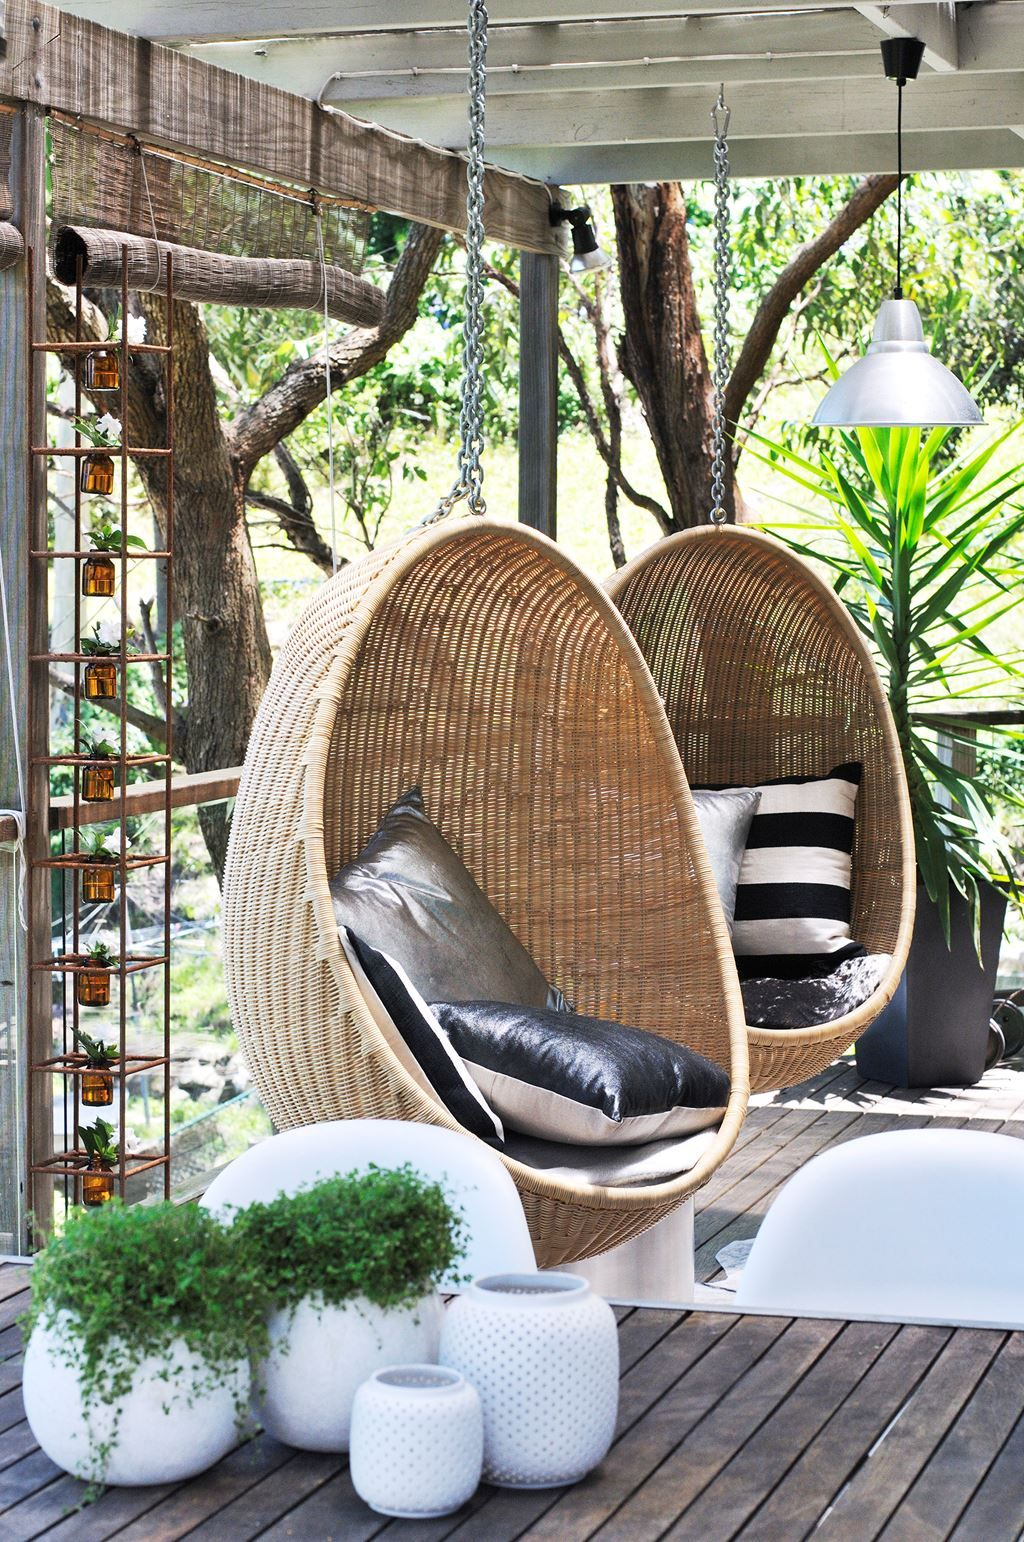 Hanging Outdoor Chairs Decorating With Cane Wicker Furniture Modern Interior Design